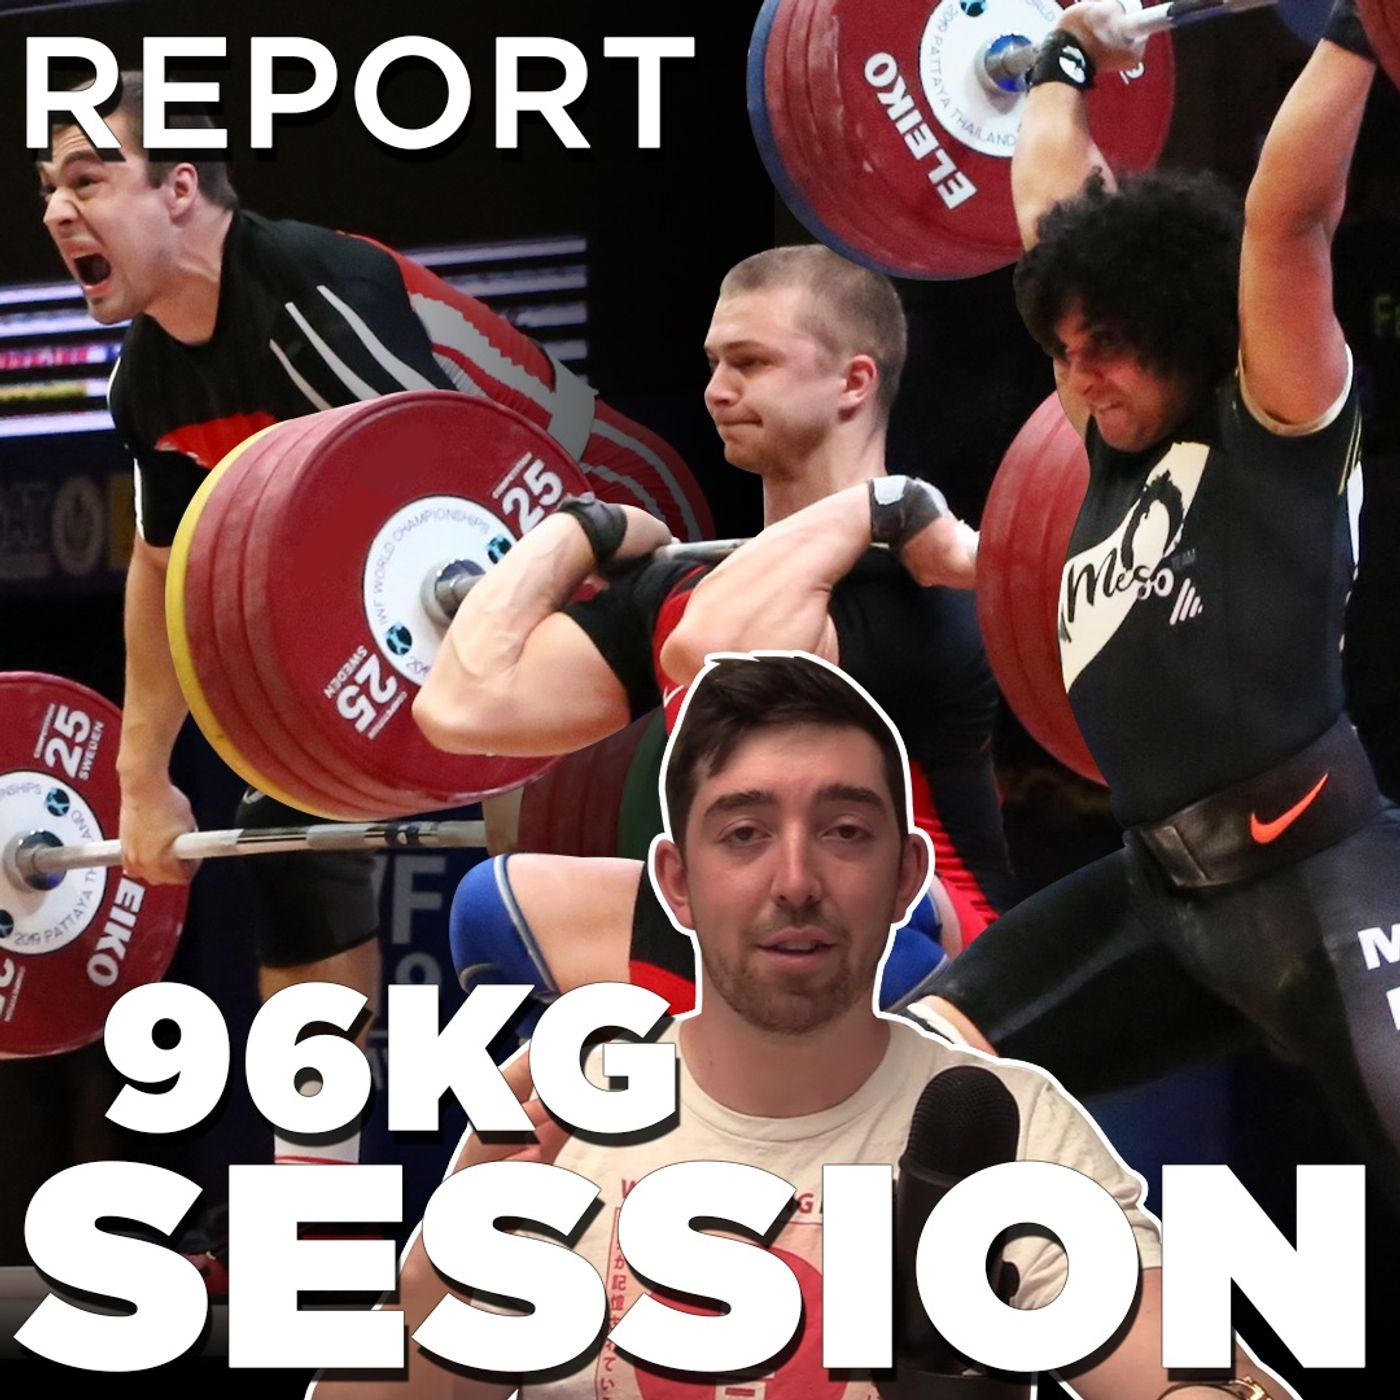 Tokyo Weightlifting M96 | REPORT